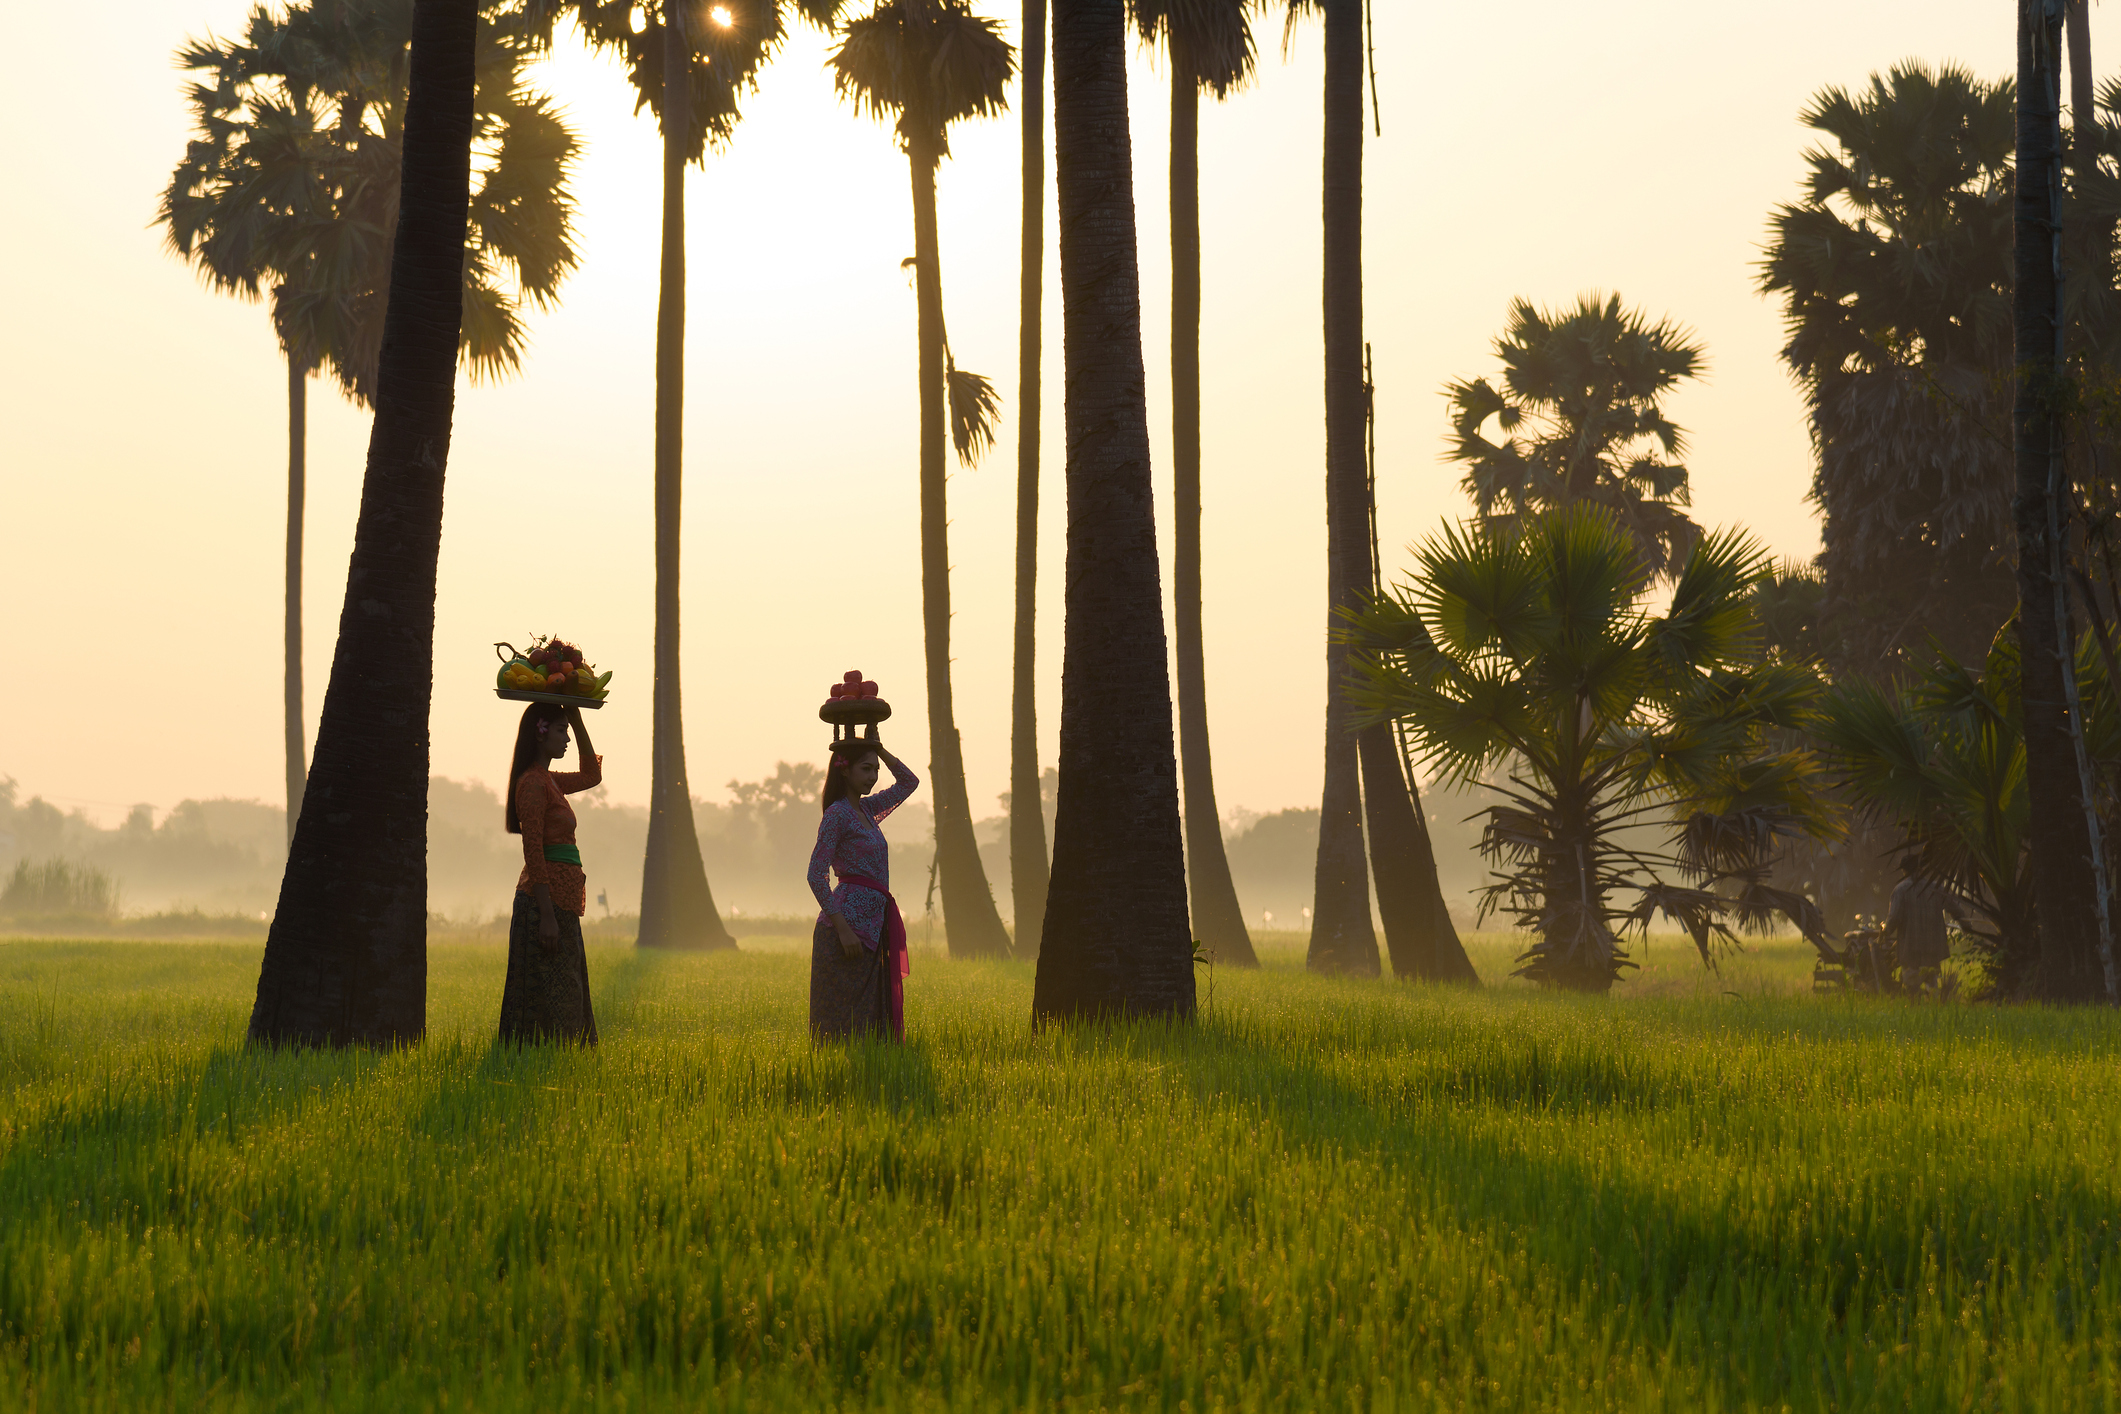 Asian woman working walk in rice field in morning at bali indonesia.